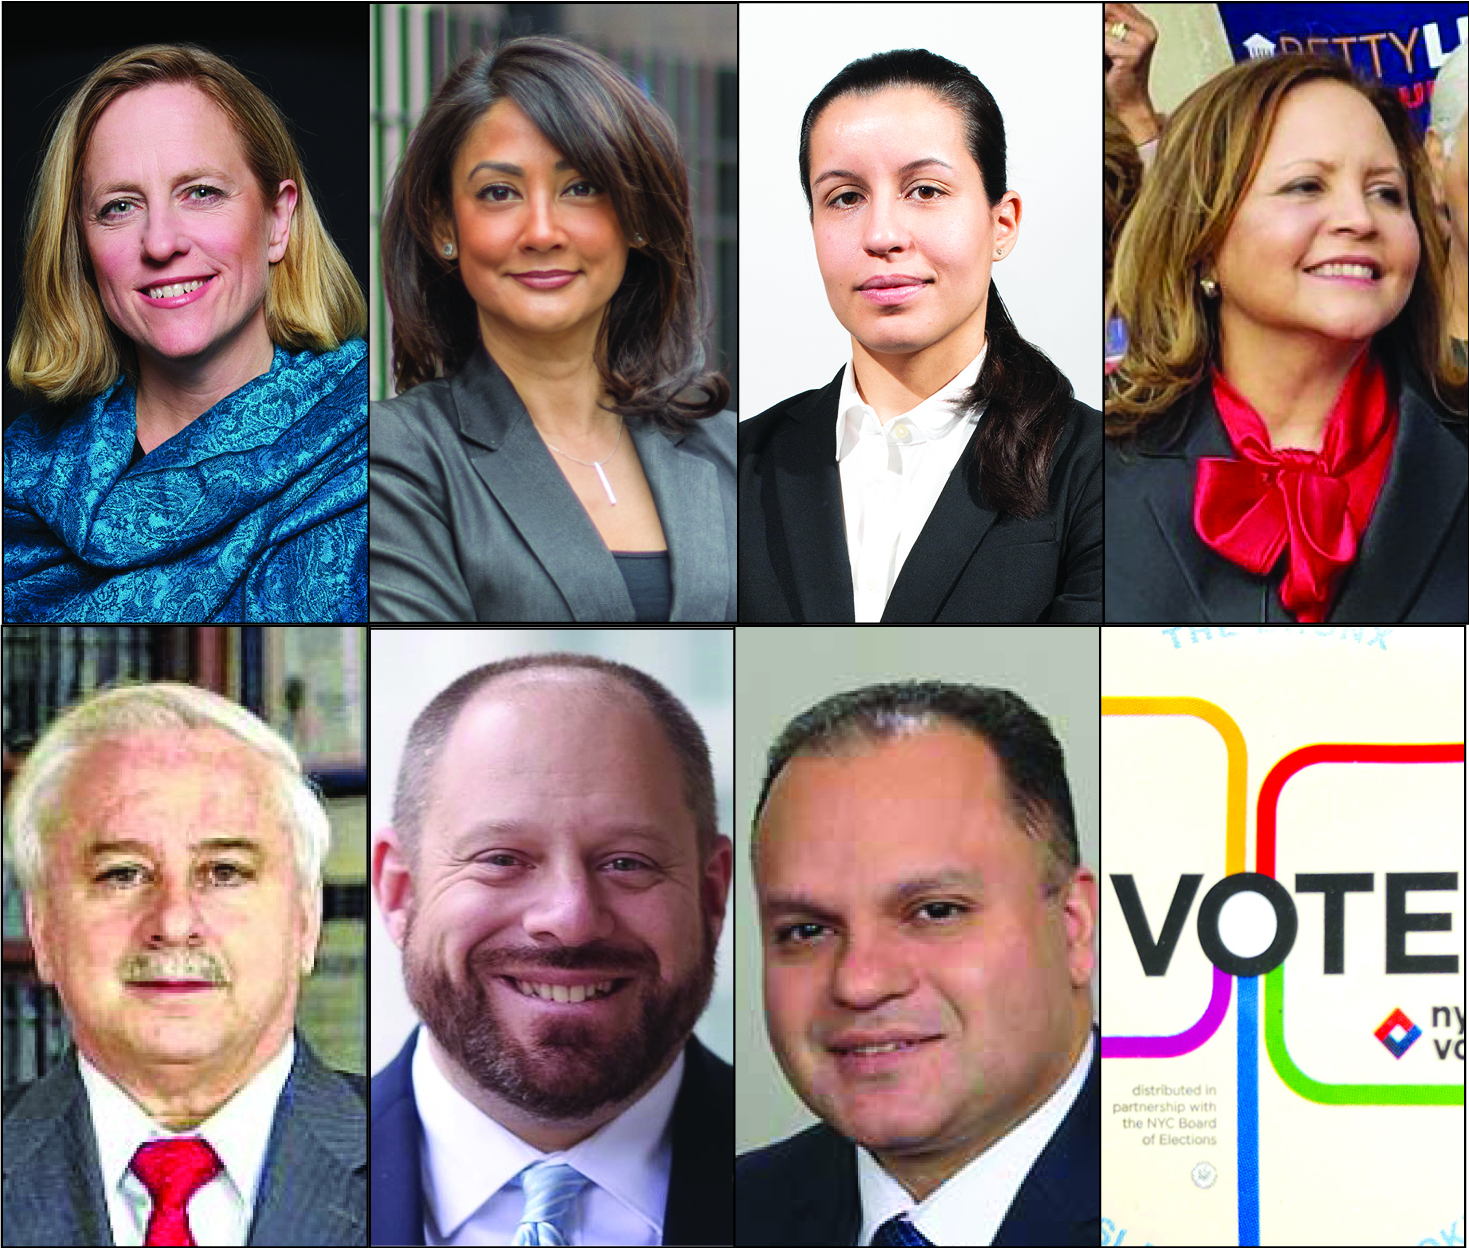 the seven democratic candidates for Queens district attorney. photos courtesy of the campaigns